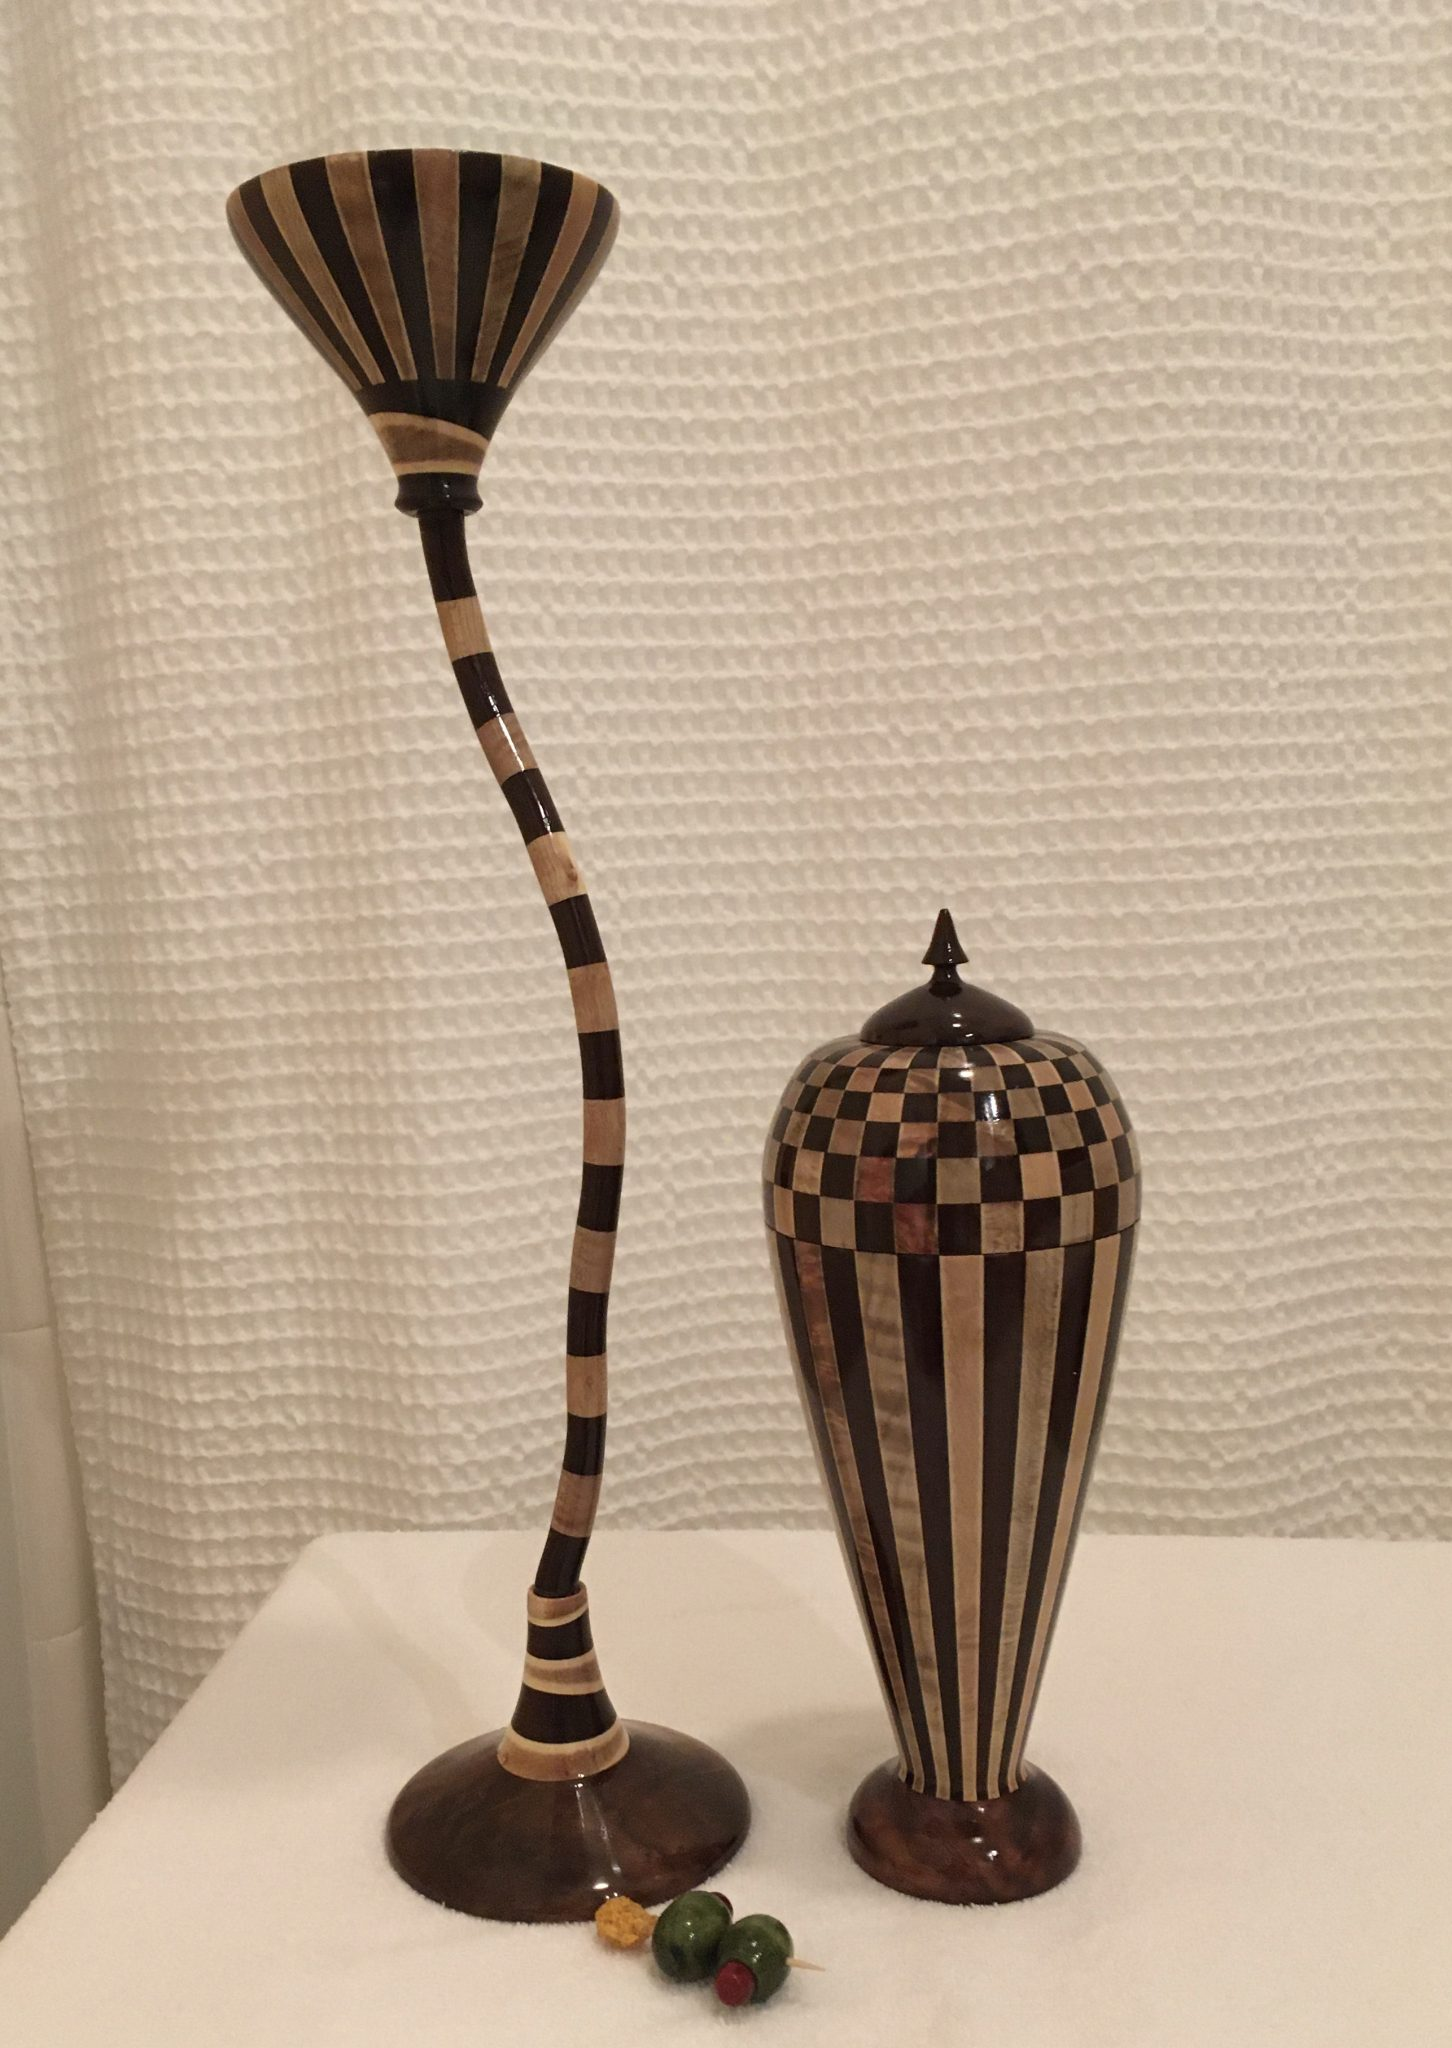 Segmented turning martini glass, cocktail shaker, olives and tooth pick